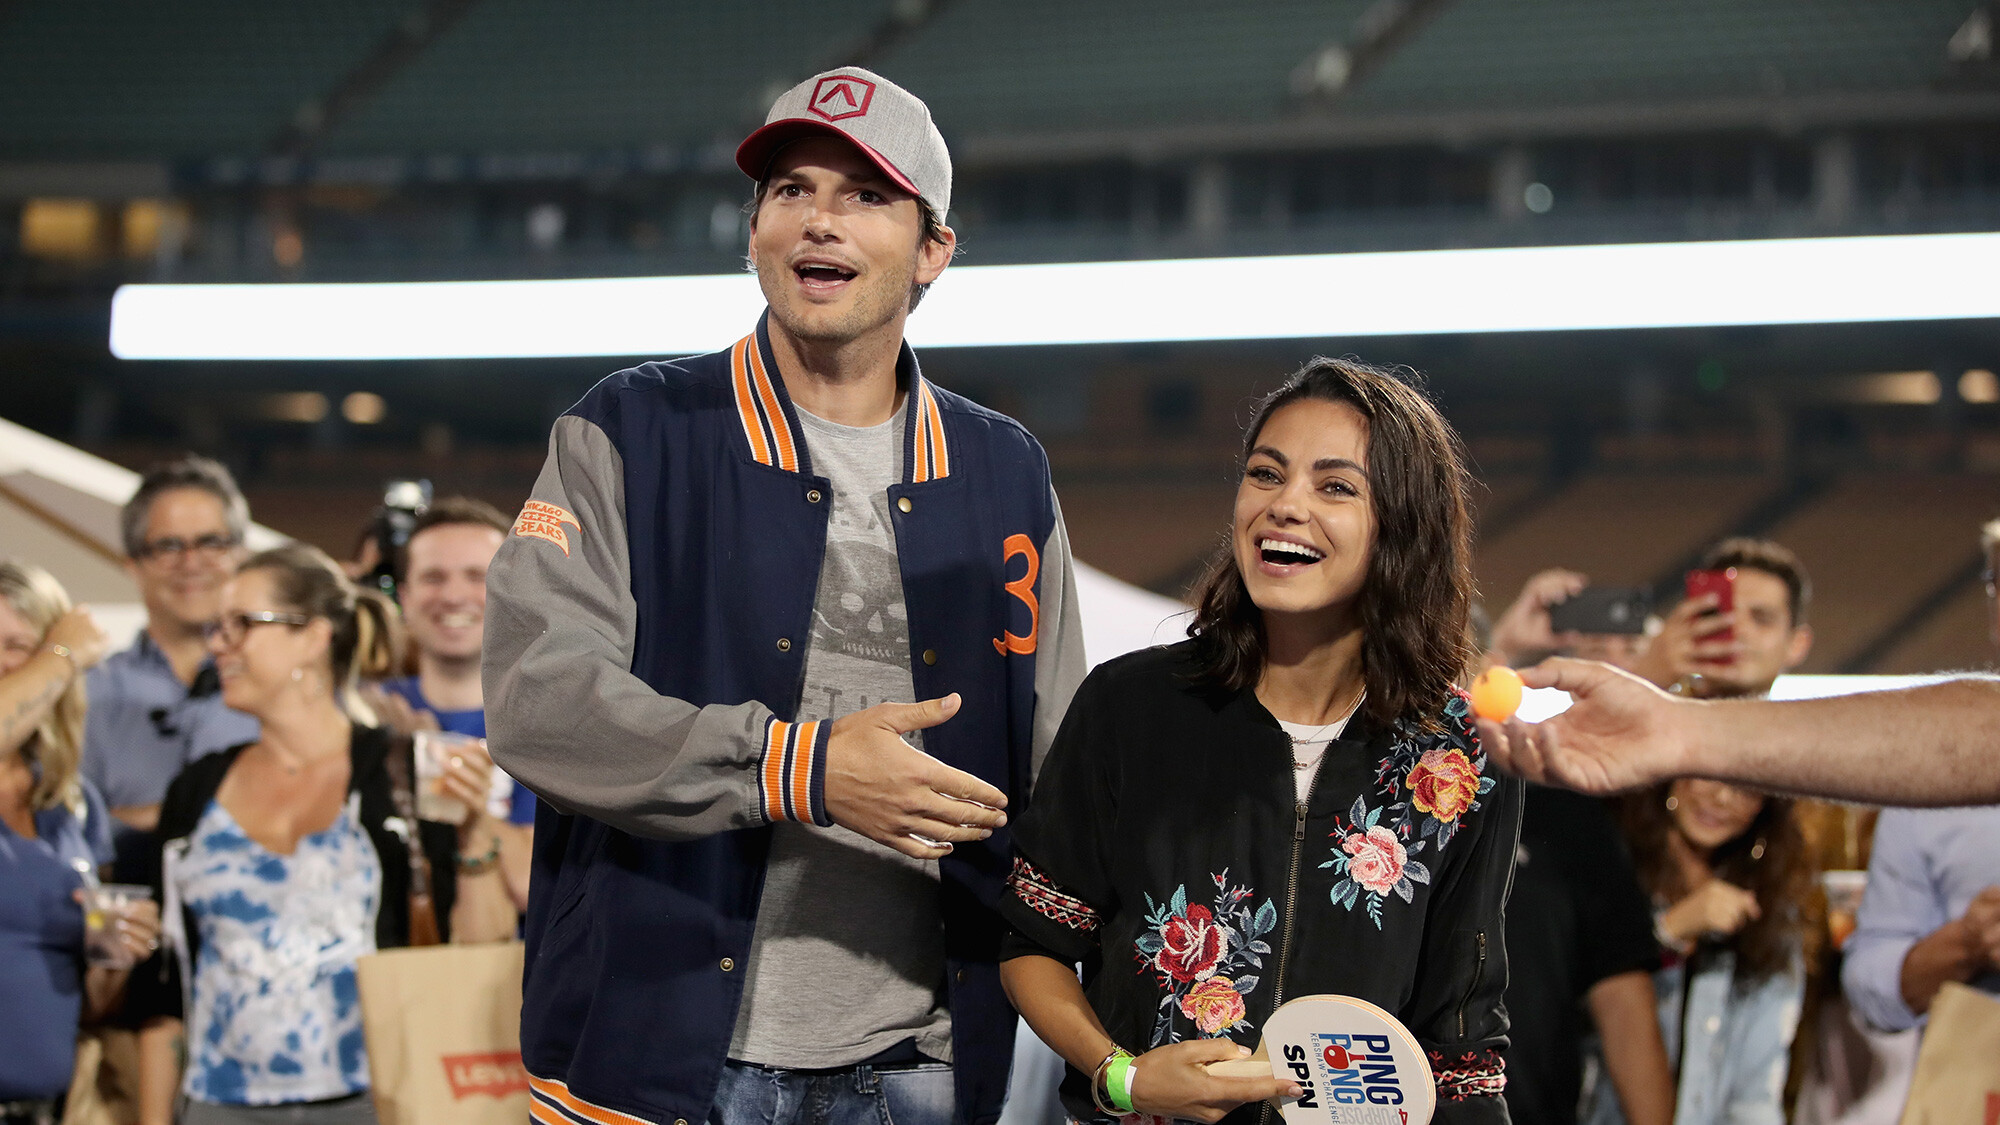 Ashton Kutcher was set to fly into space. Mila Kunis talked him out of it